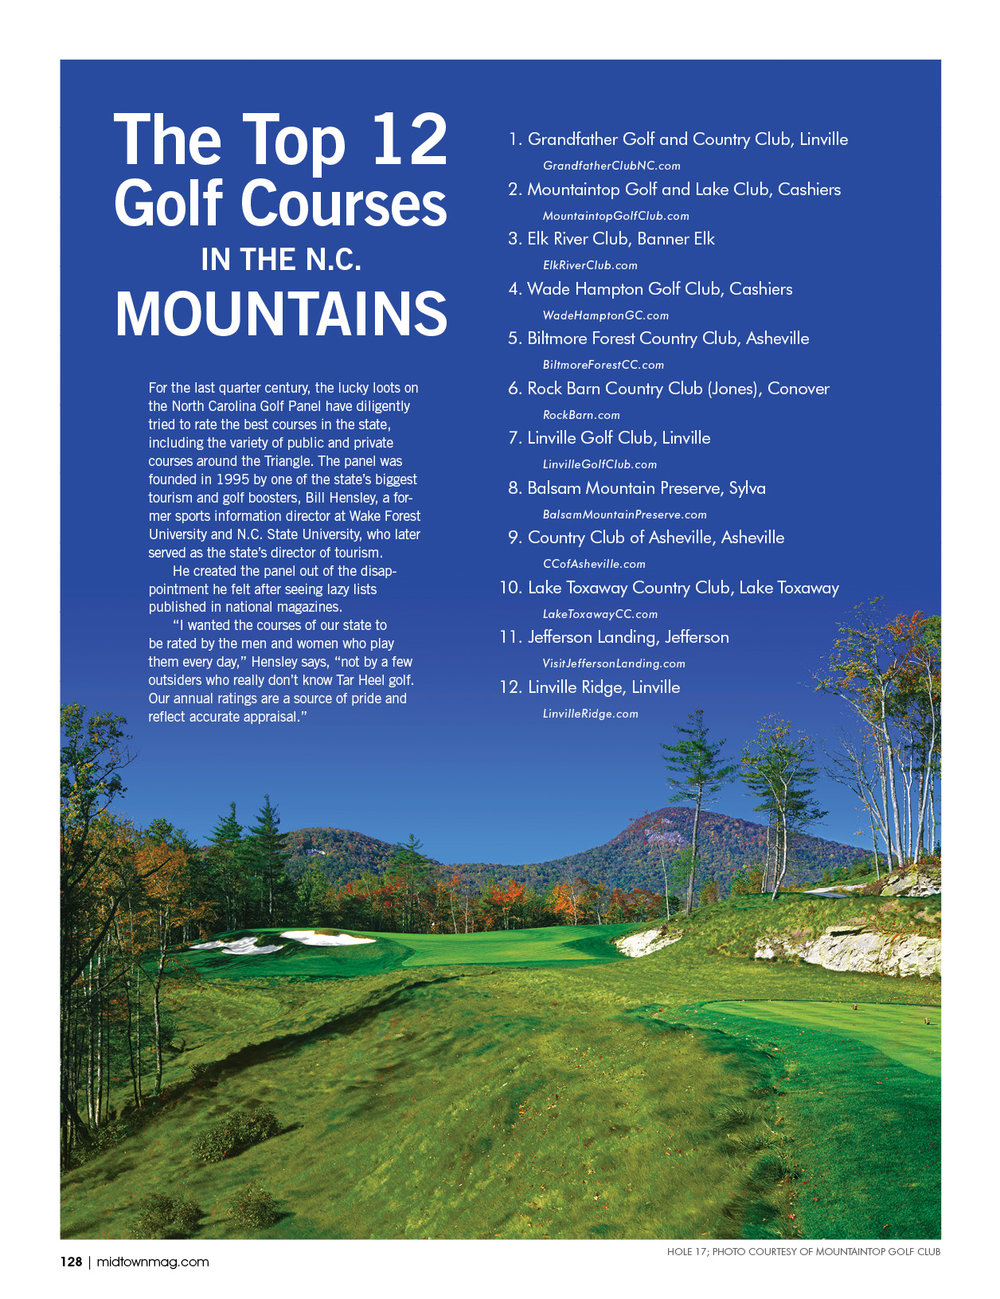 mm 128-Golfing-MountainsToSea.jpg